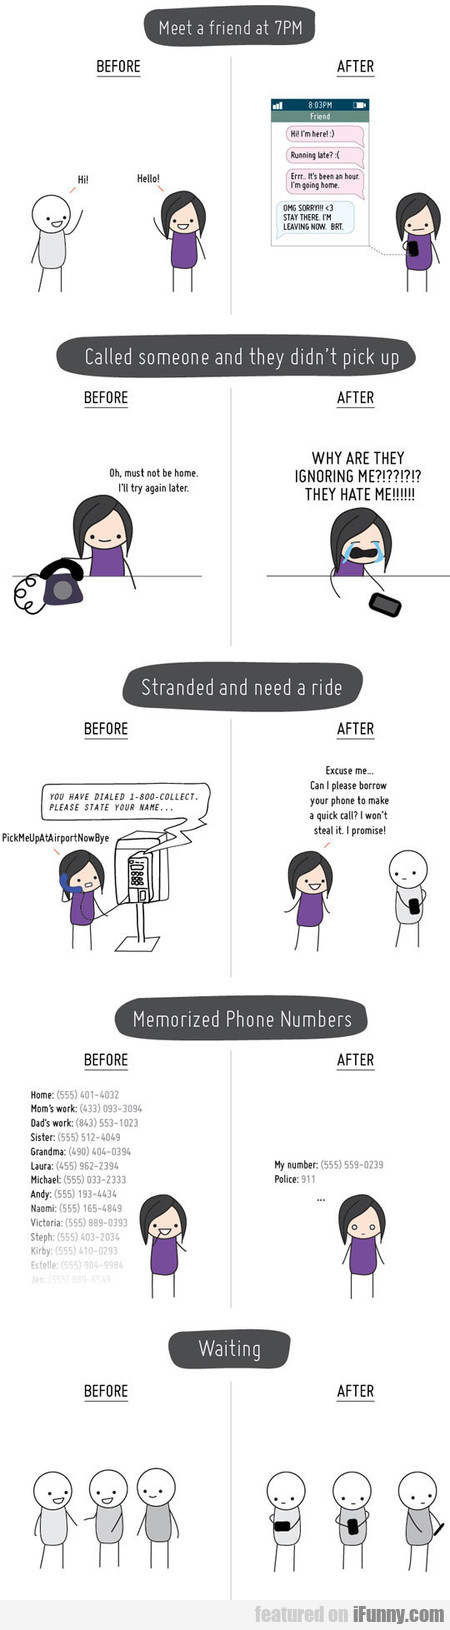 Life Before And After Mobile Phones